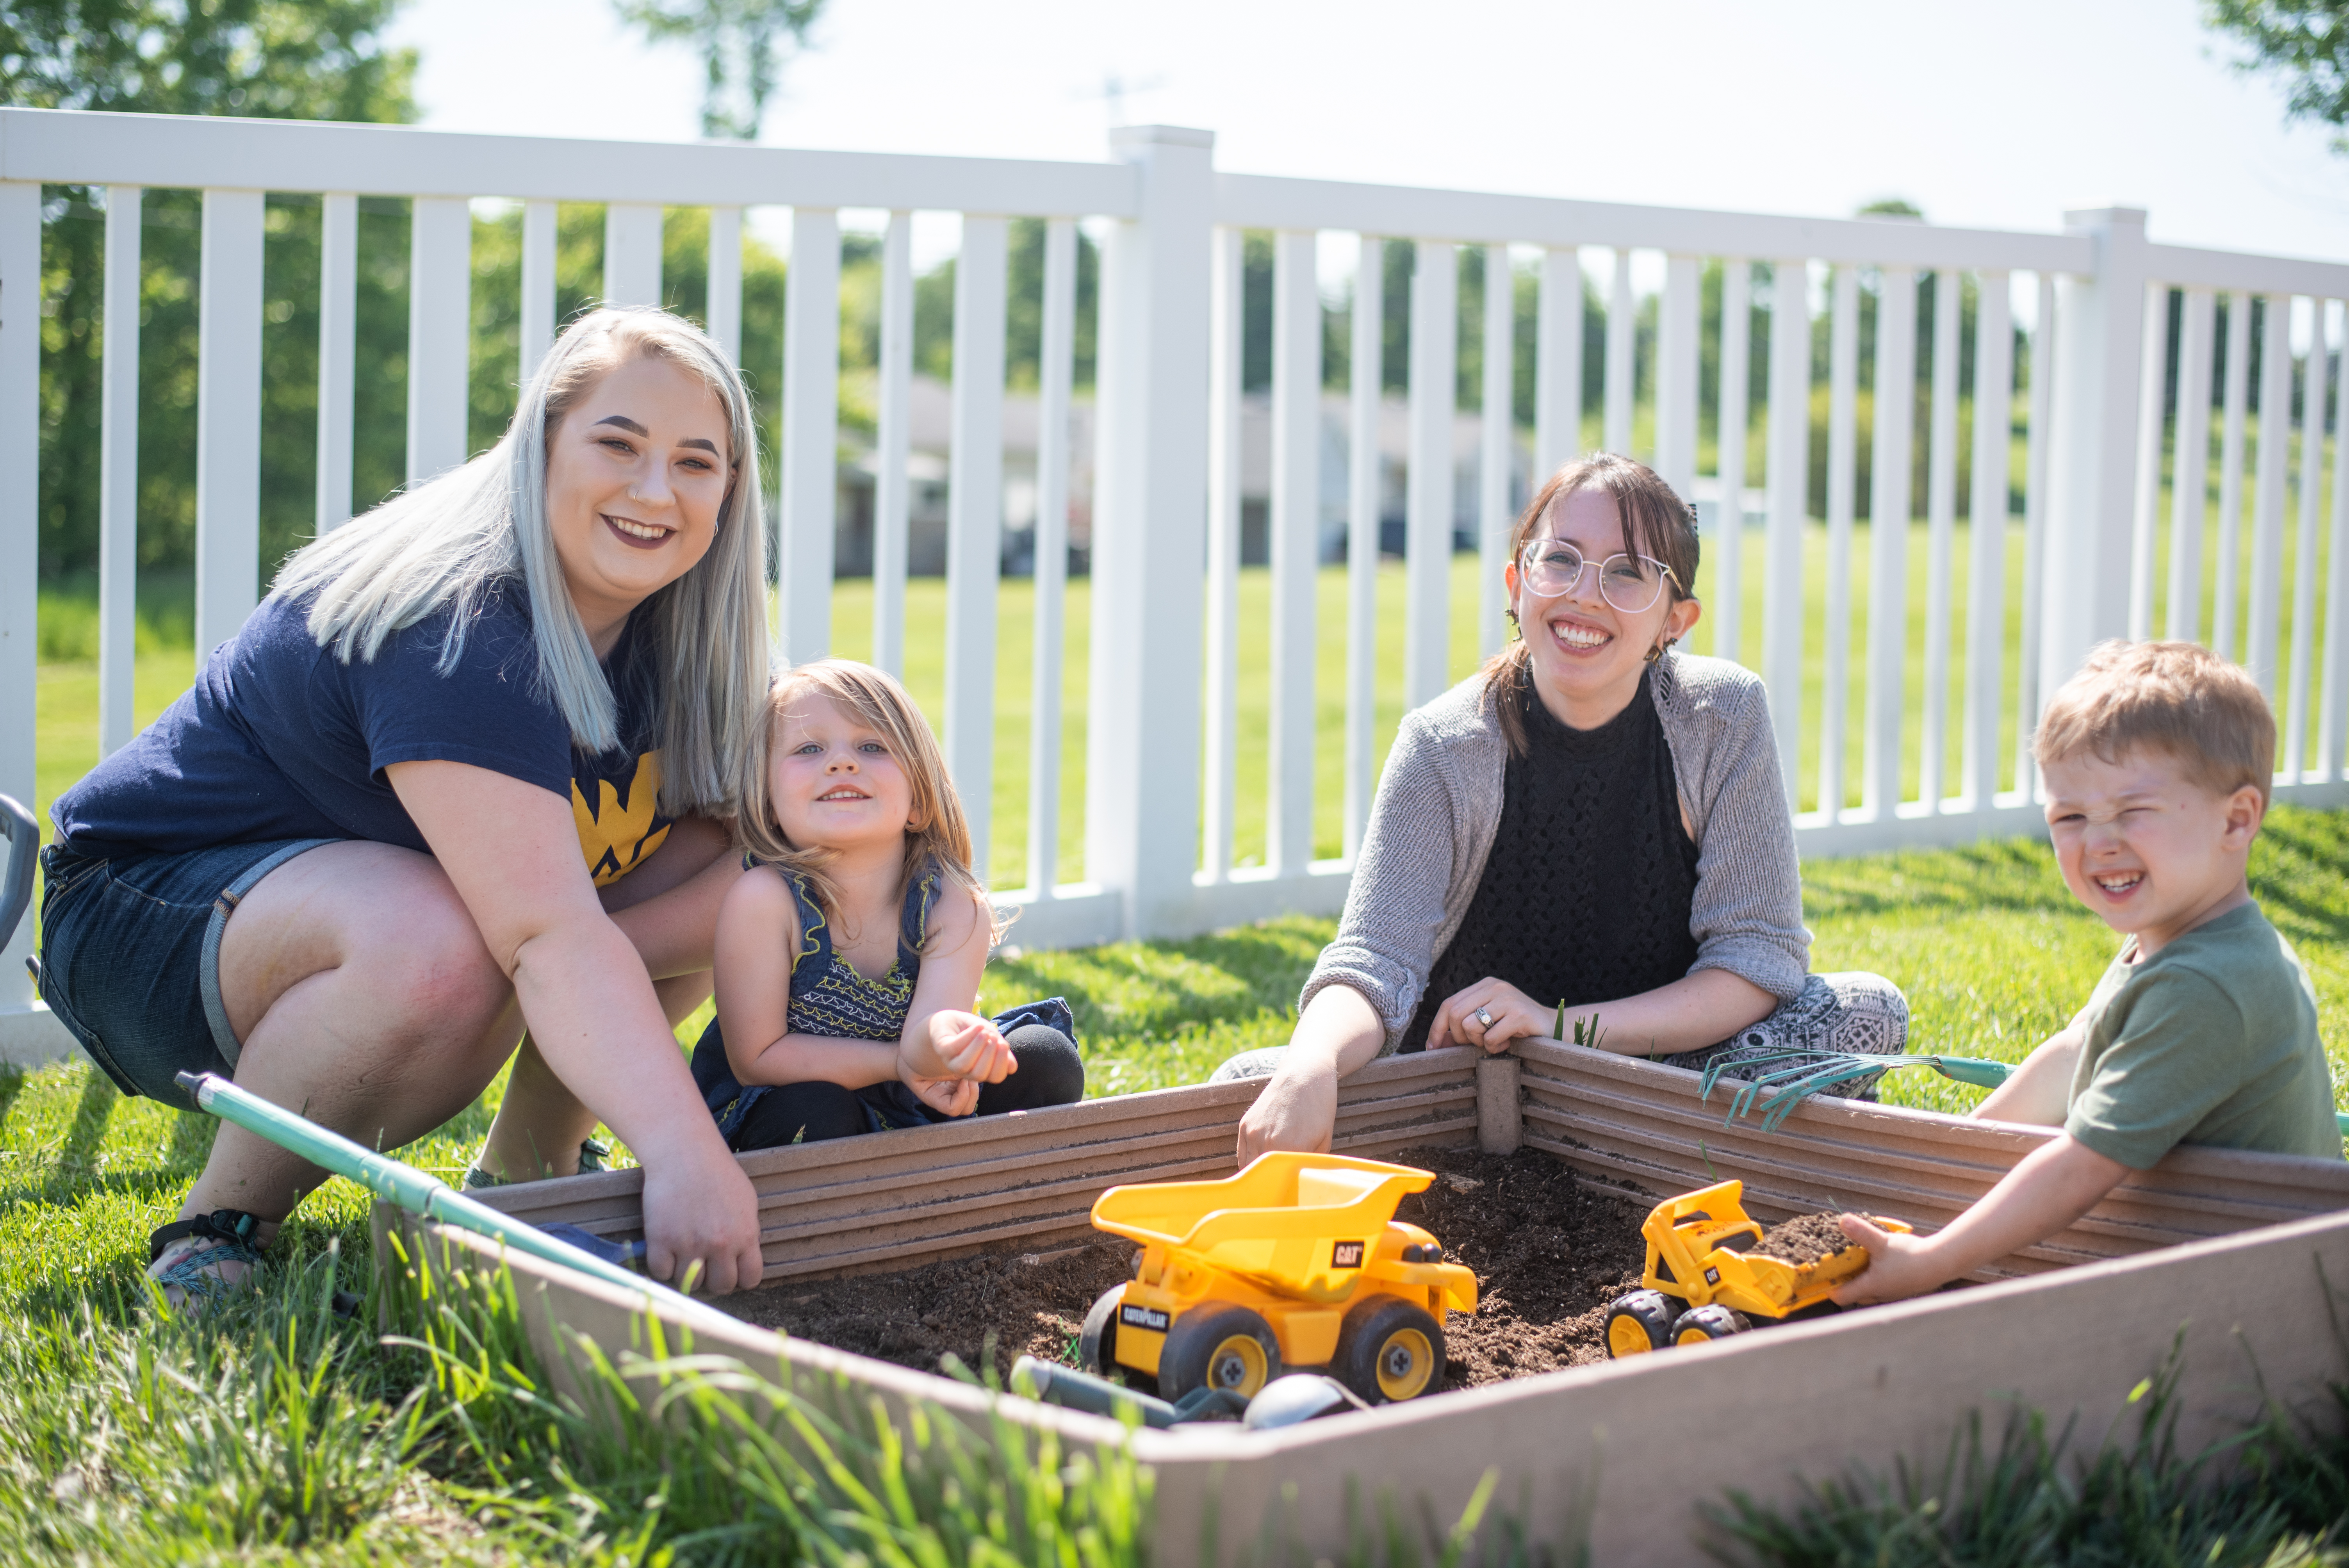 WVU Parkersburg ranks among the top child development degree programs in the U.S.